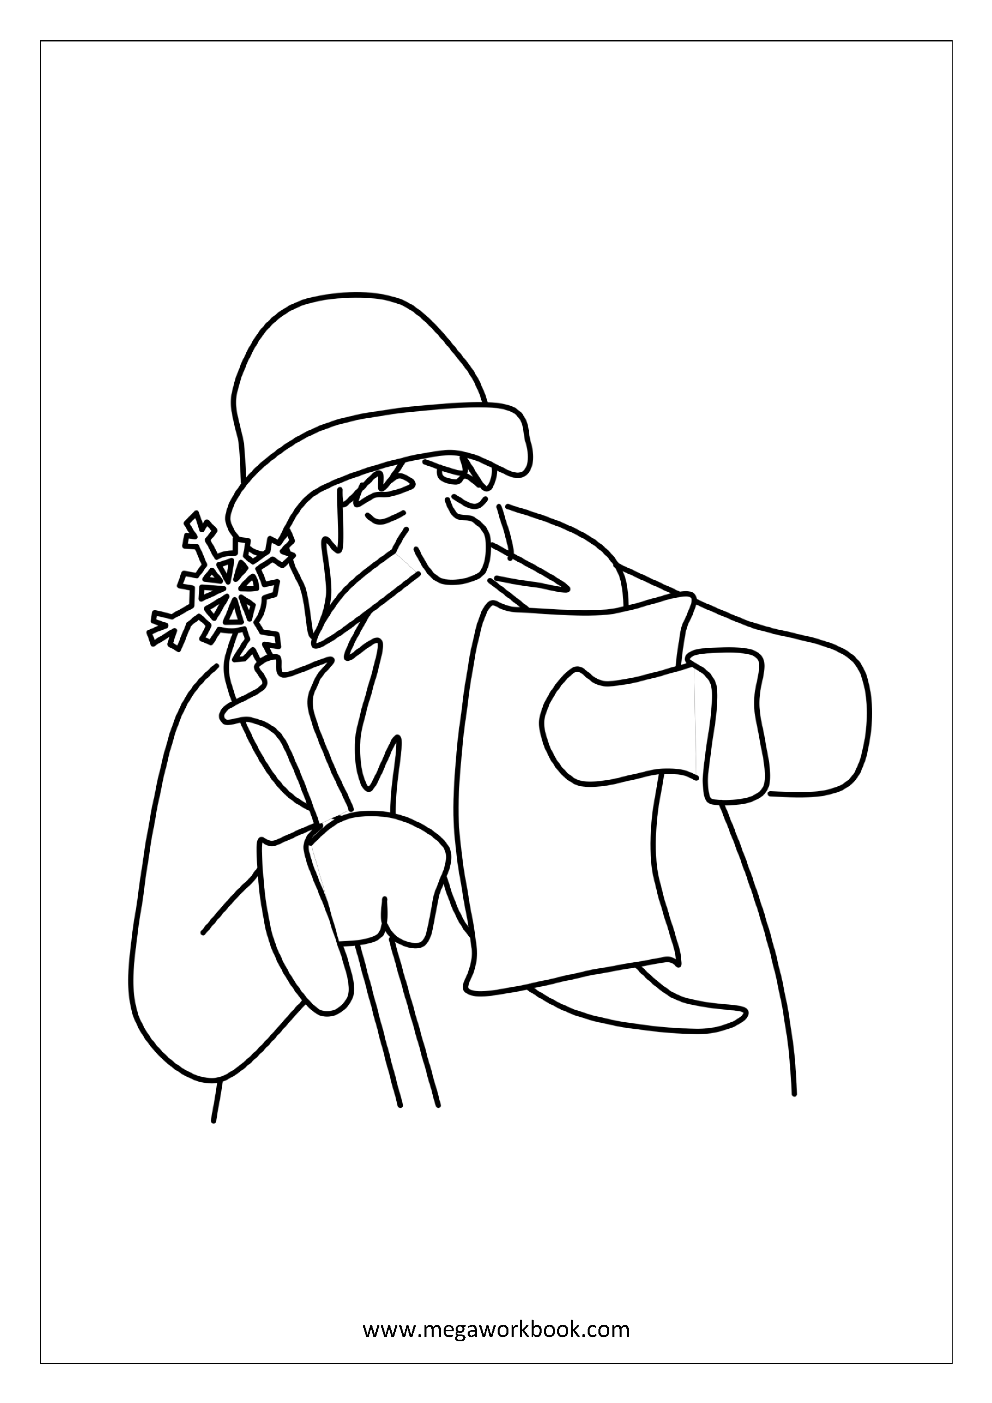 free printable coloring sheet christmas coloring pages santa claus with wishlist